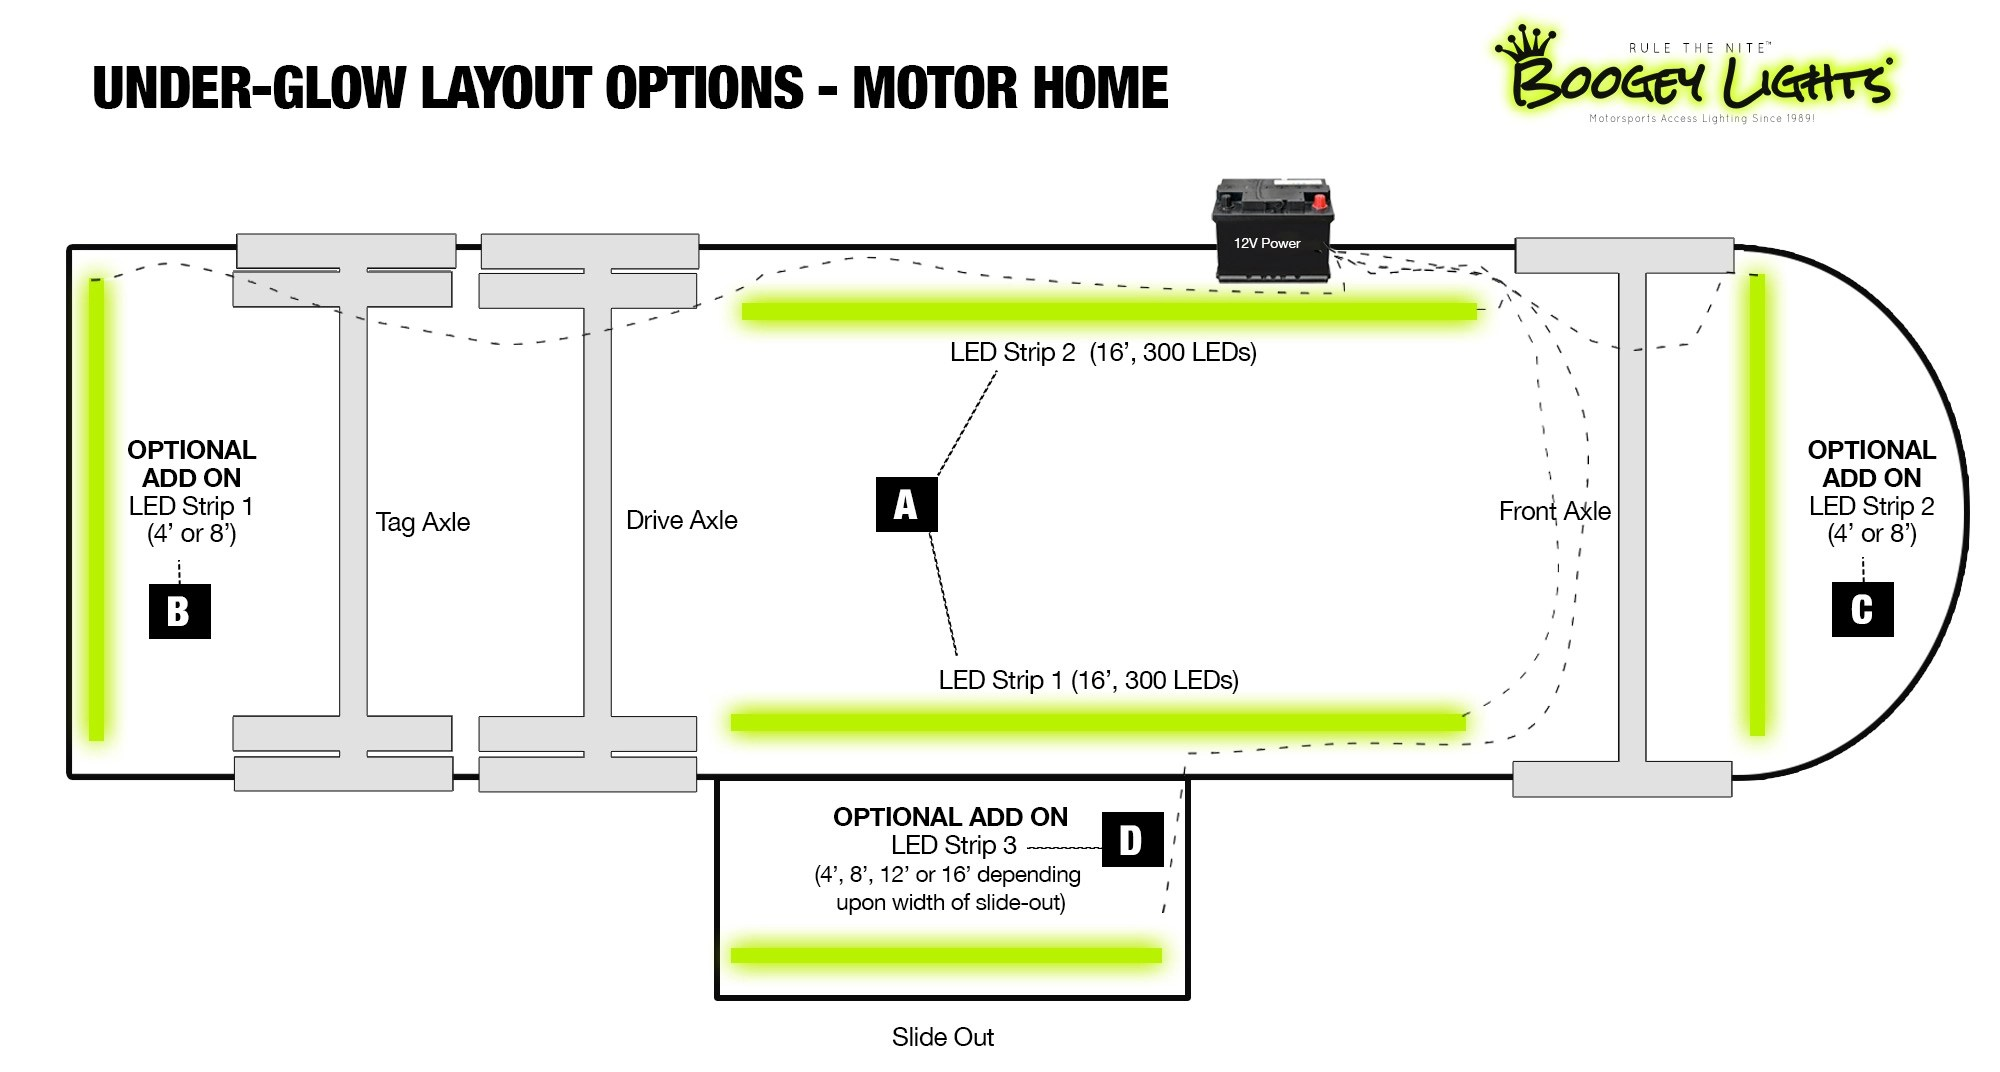 goldwing 1500 trailer wiring diagram honeywell wireless programmable thermostat led under glow light kit for rvs campers and trailers placement options boogey lights controller